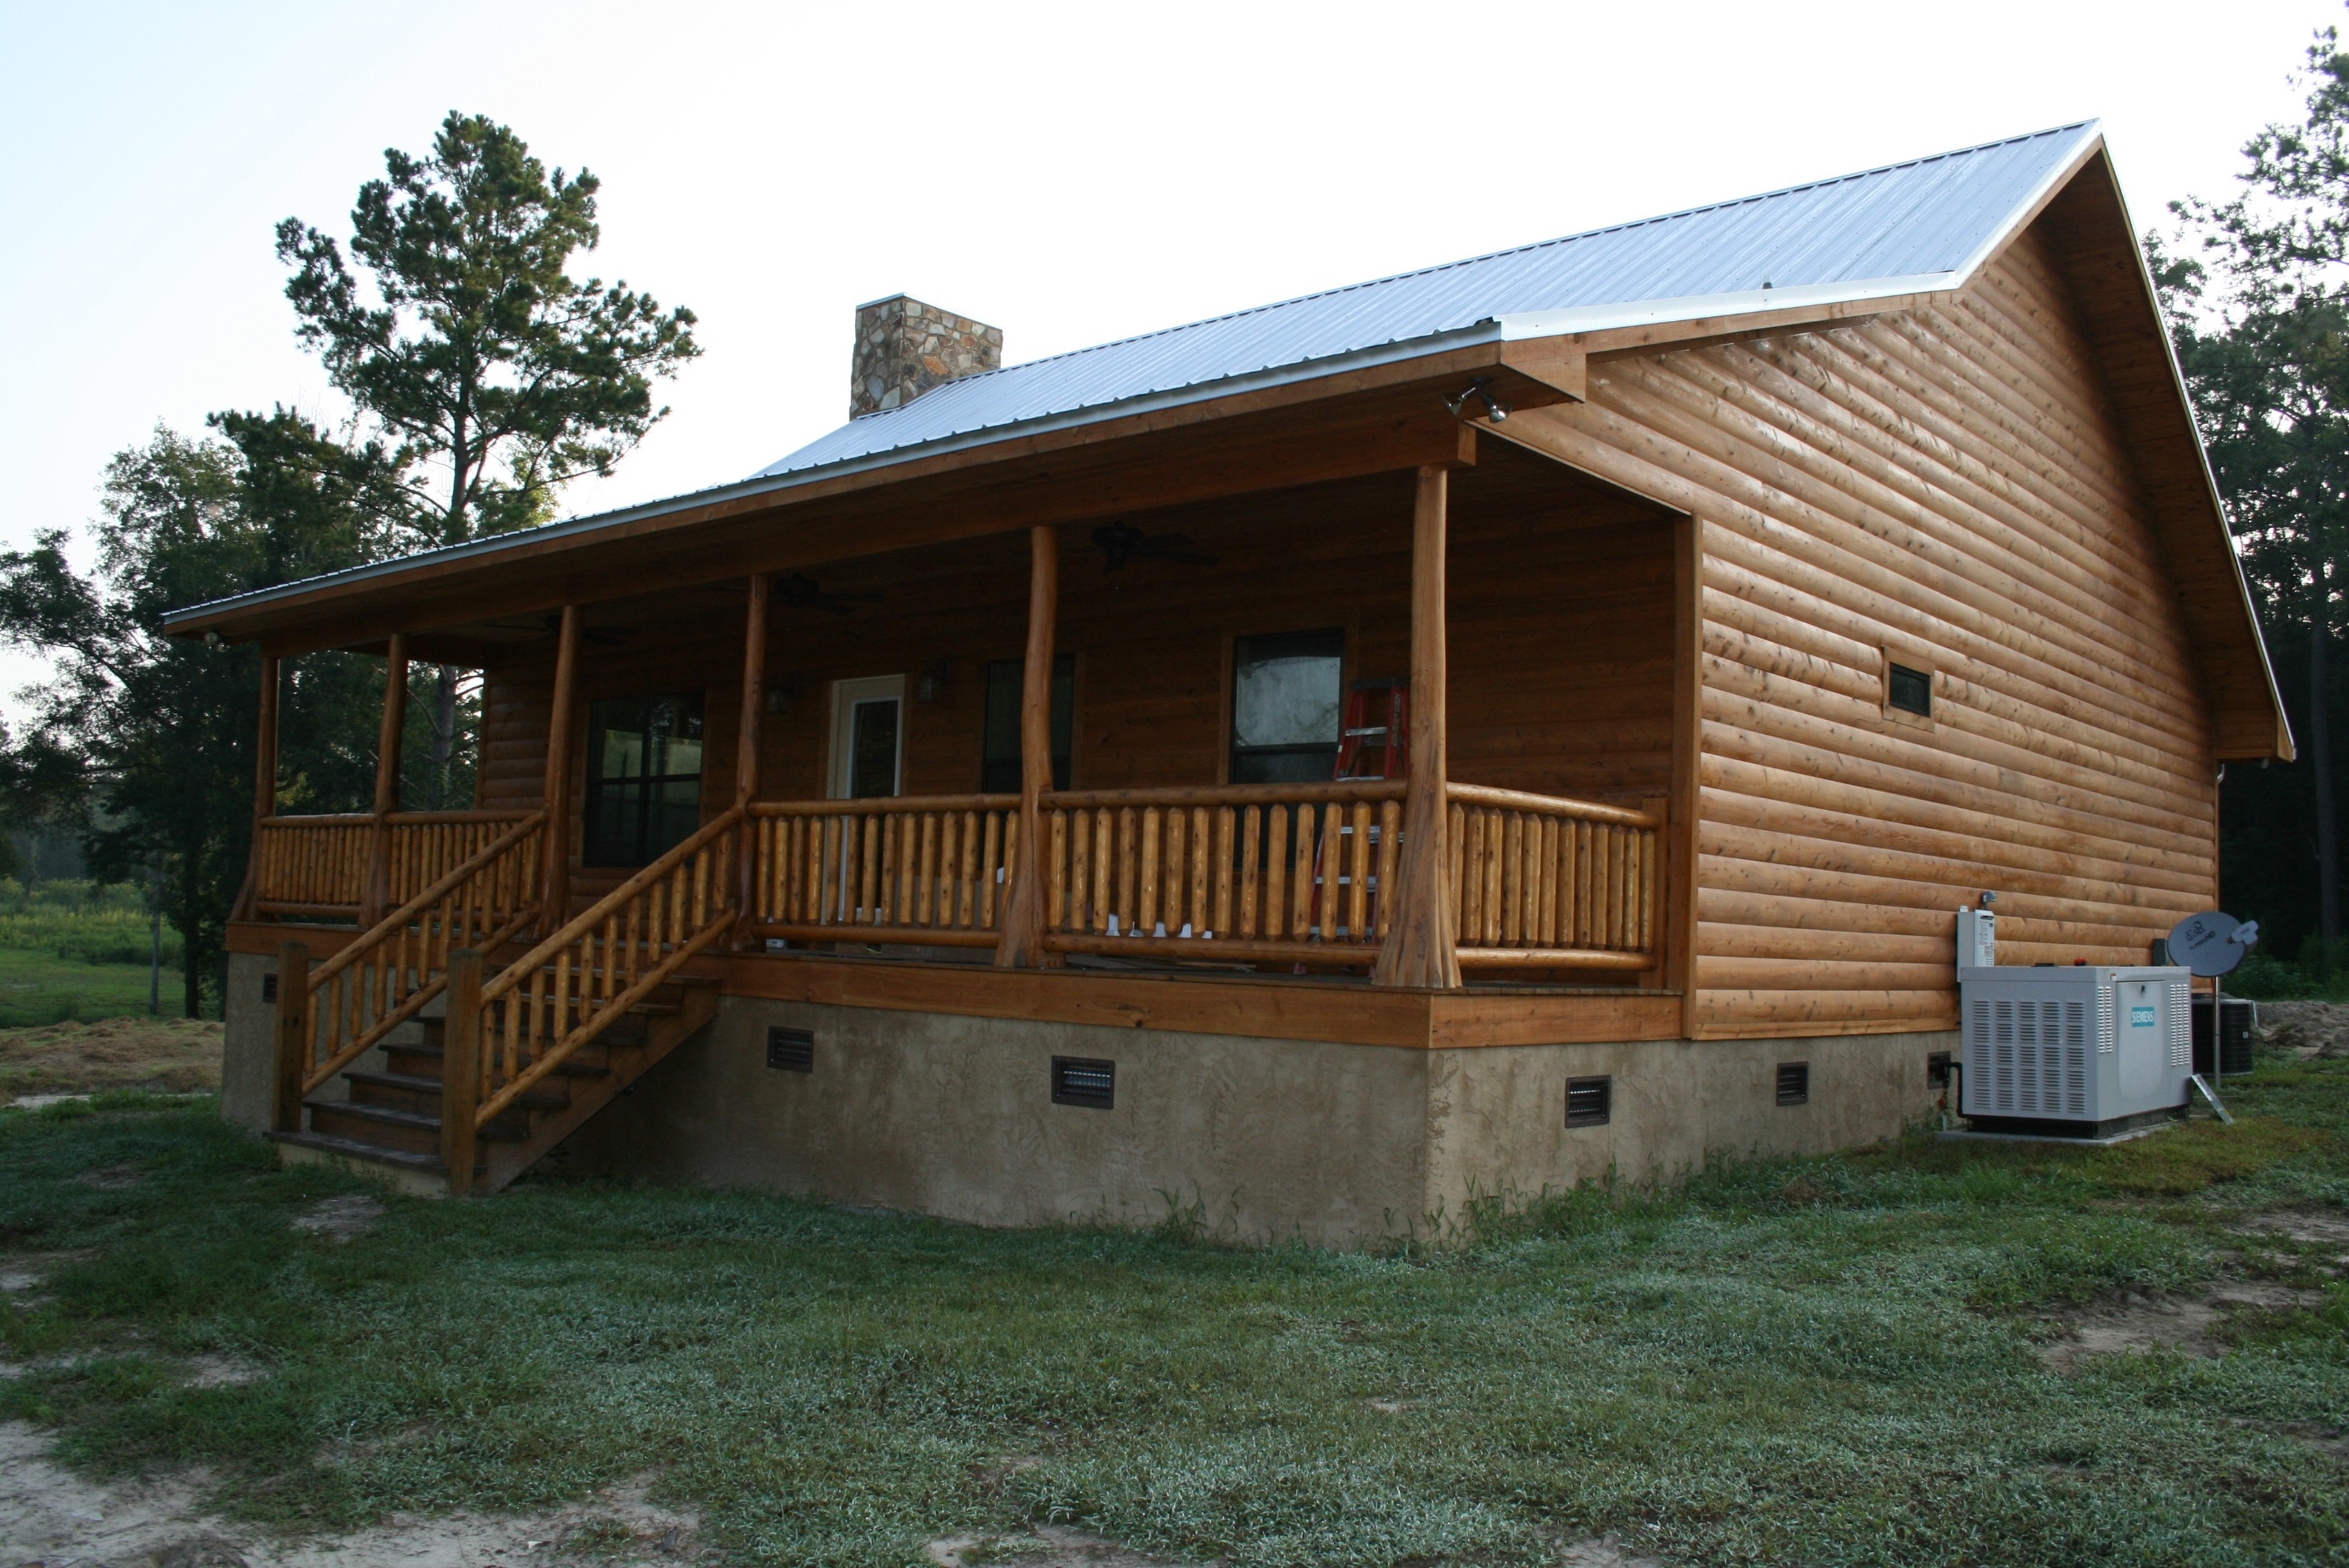 Flint River Log Homes Can Provide Decorative And Structural Logs Timber Frames Porch Posts For Your New Home These Are Hand Led Cypress Trees That